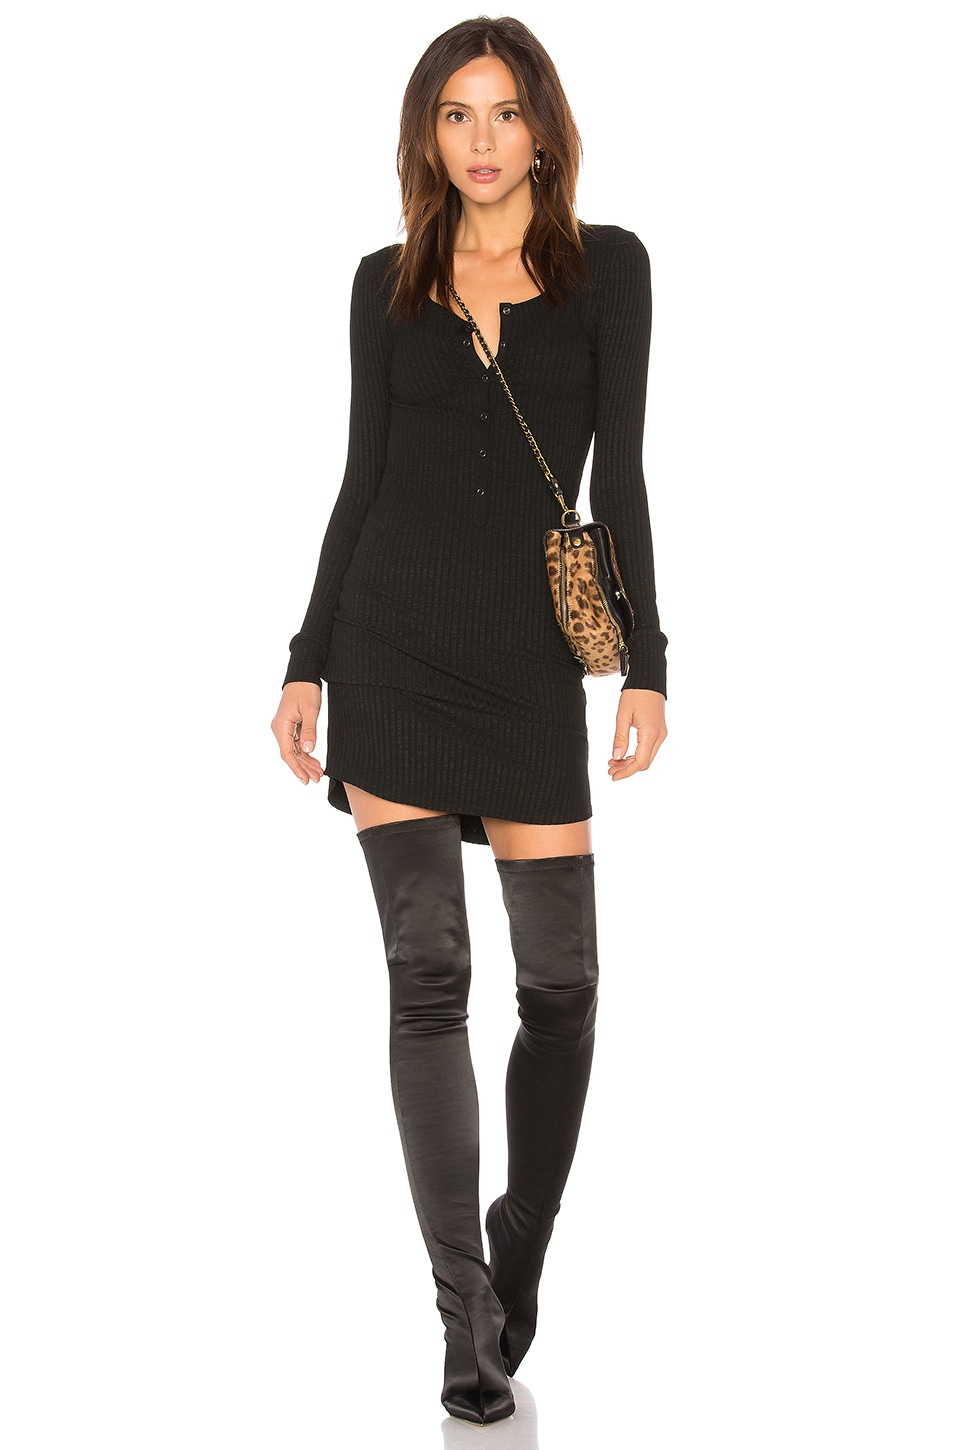 David Lerner Long Sleeve Henley T Shirt Dress in Classic Black